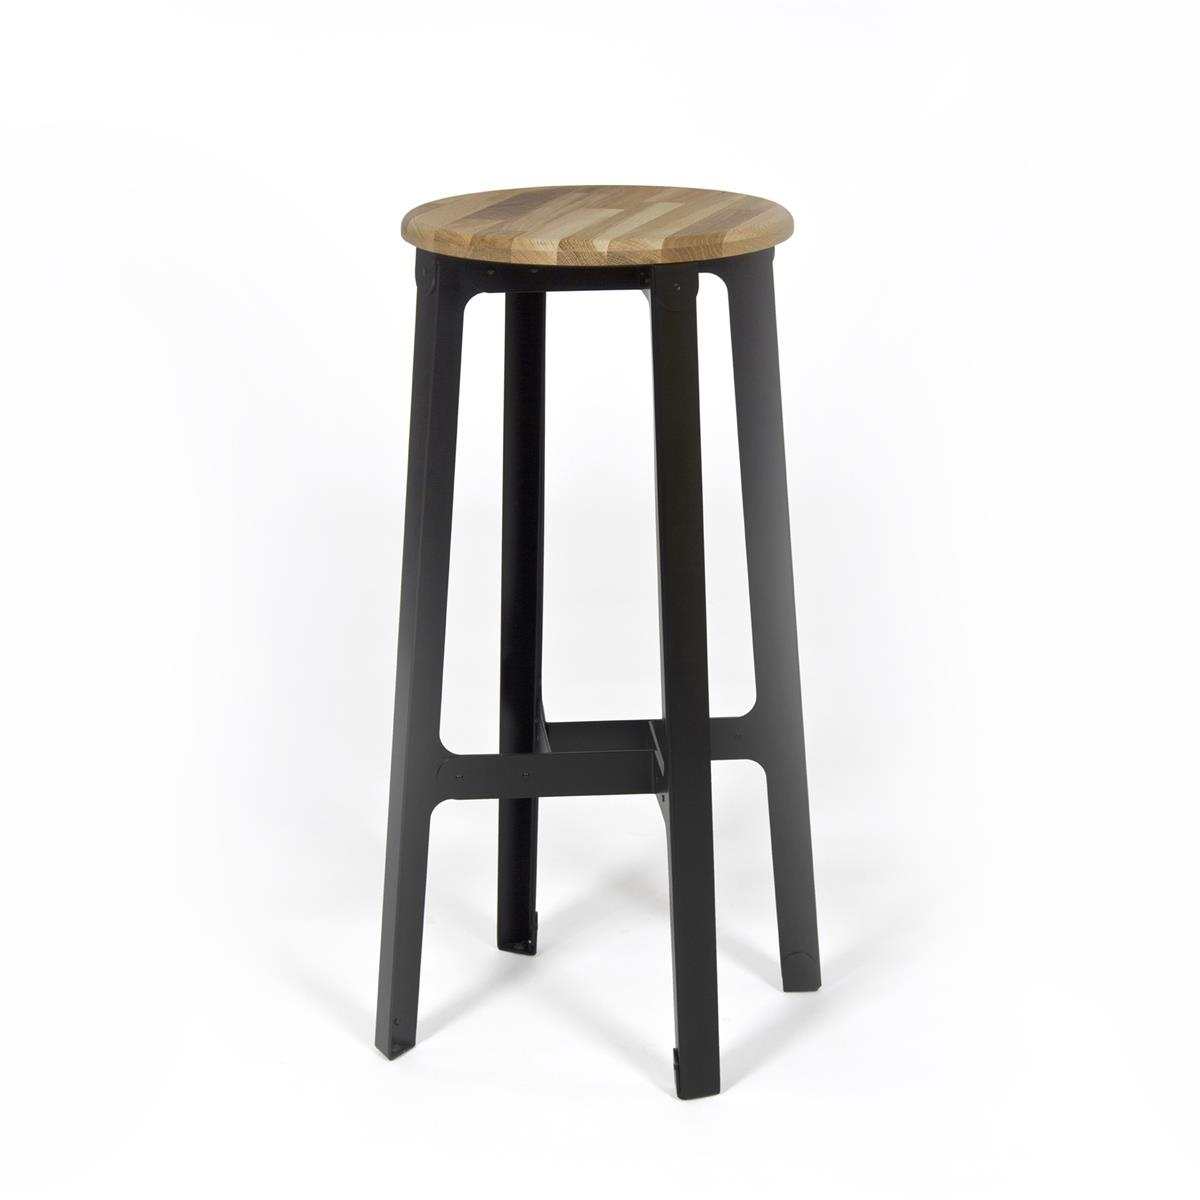 Construct Bar Stool - Oak & Jet black